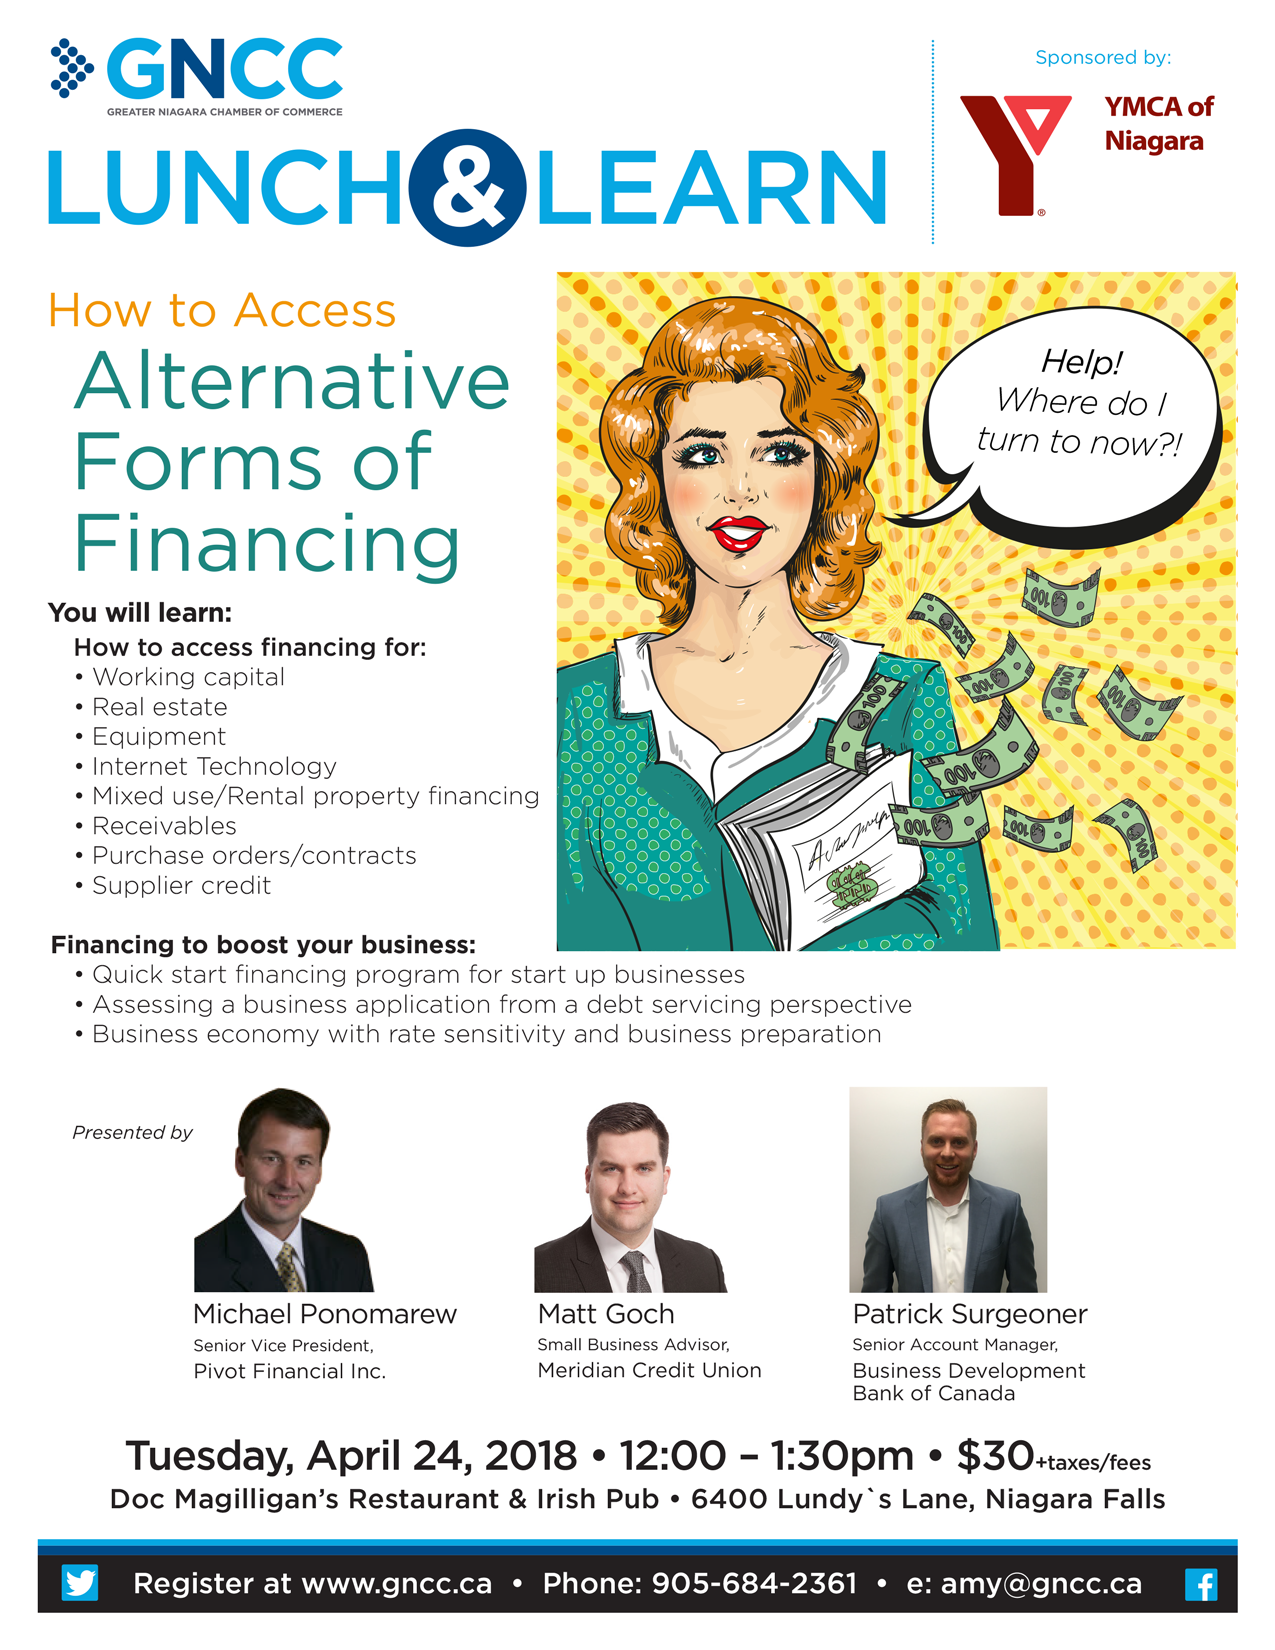 Lunch & Learn: Alternative Forms of Financing